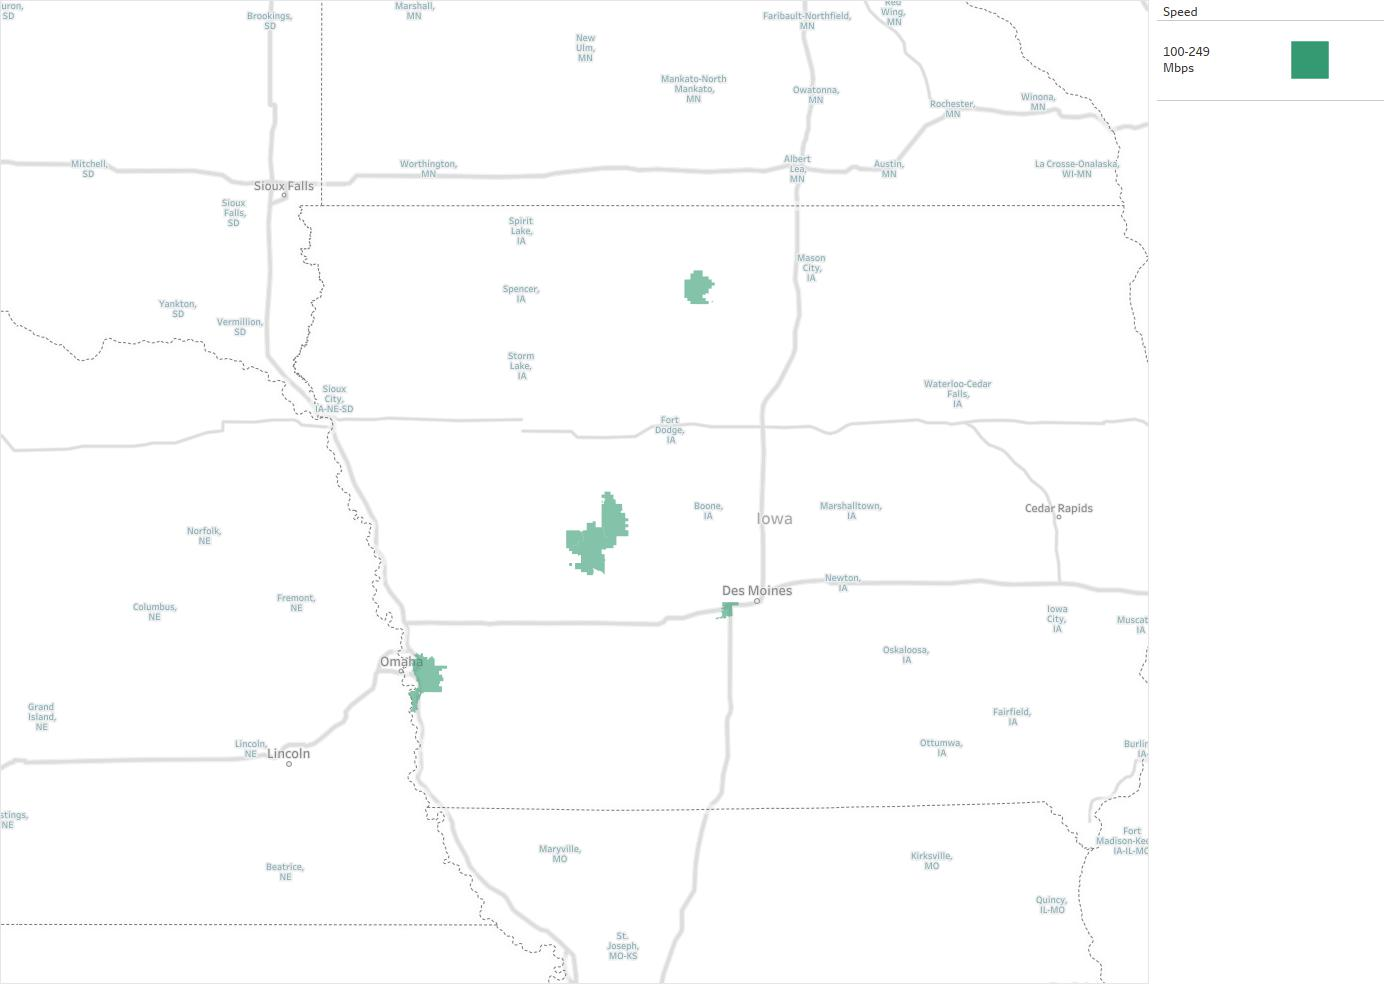 Coon Rapids Municpal Utitlies Availability Areas Coverage Map